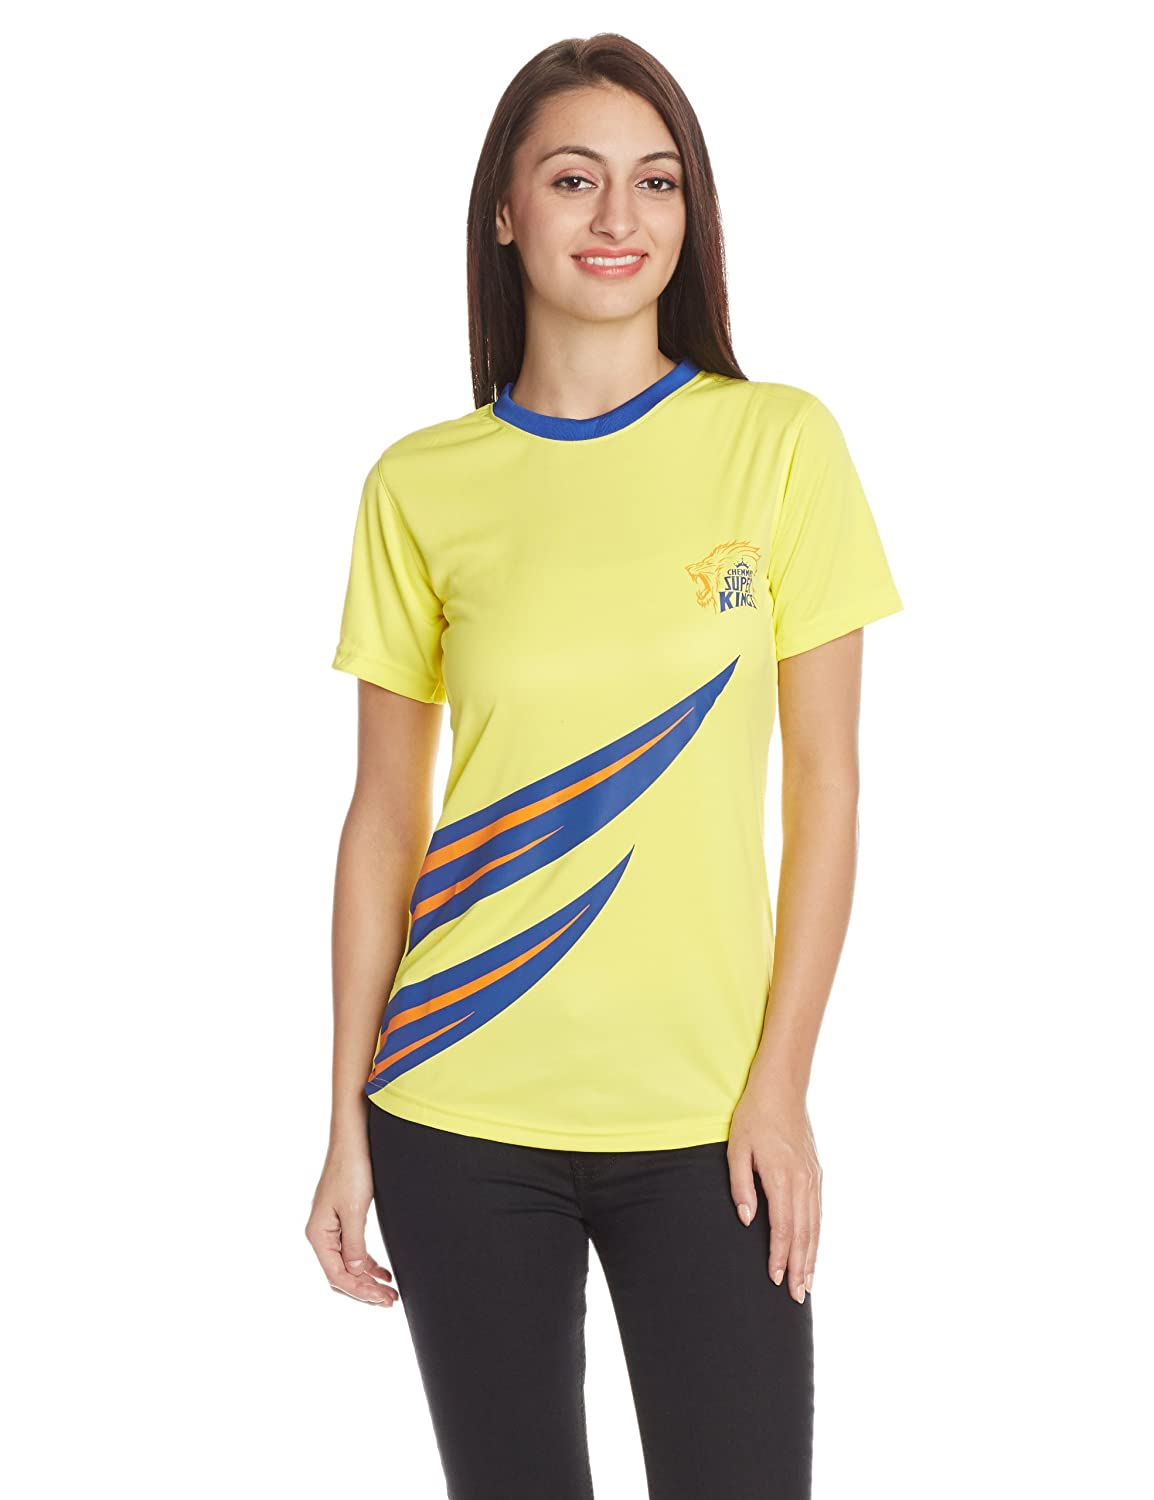 Upto 75% discount on T-Shirt of various brands, starts @75 on Amazon. in (Buy Tshirt under Rs.100 / 200/ 300/ 400/ 500/ 600 at Amazon)